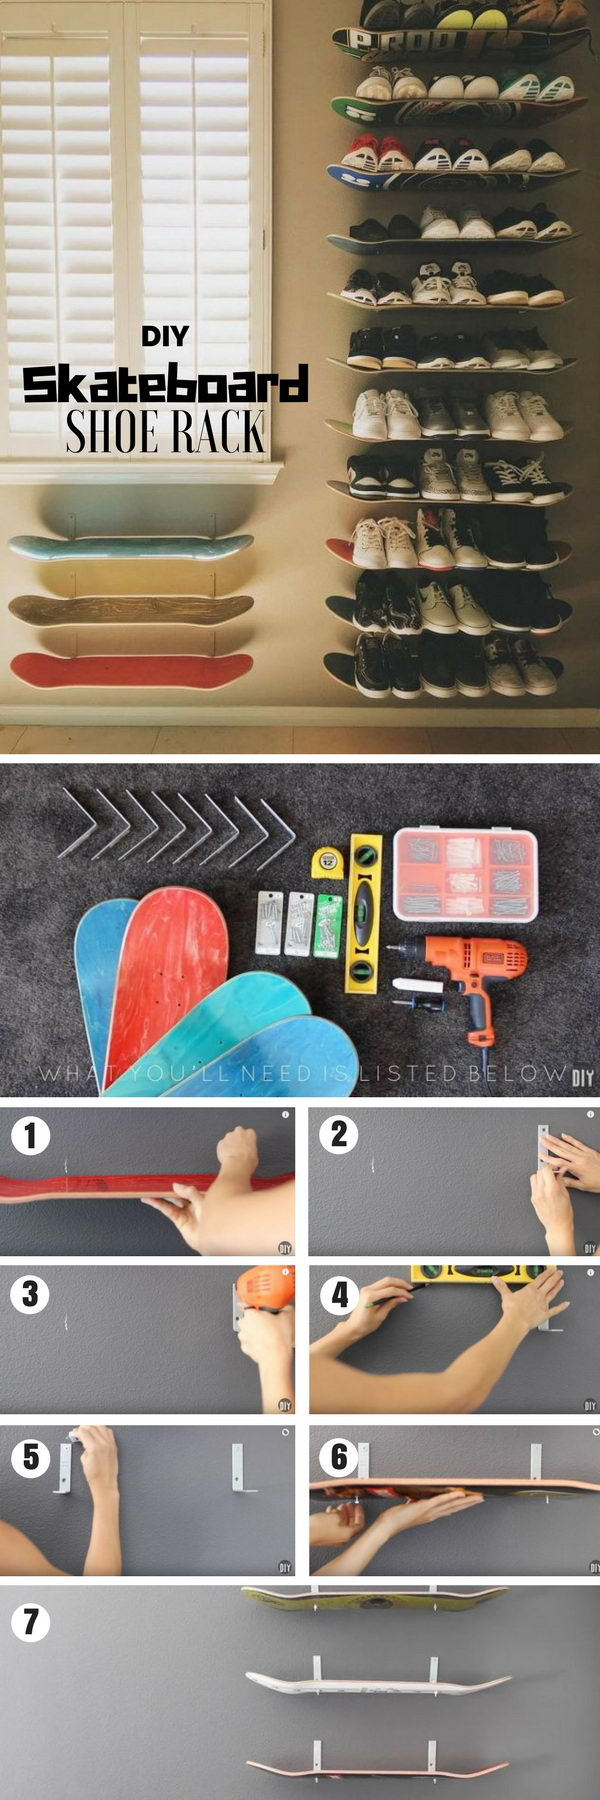 Skateboard Shoe Rack